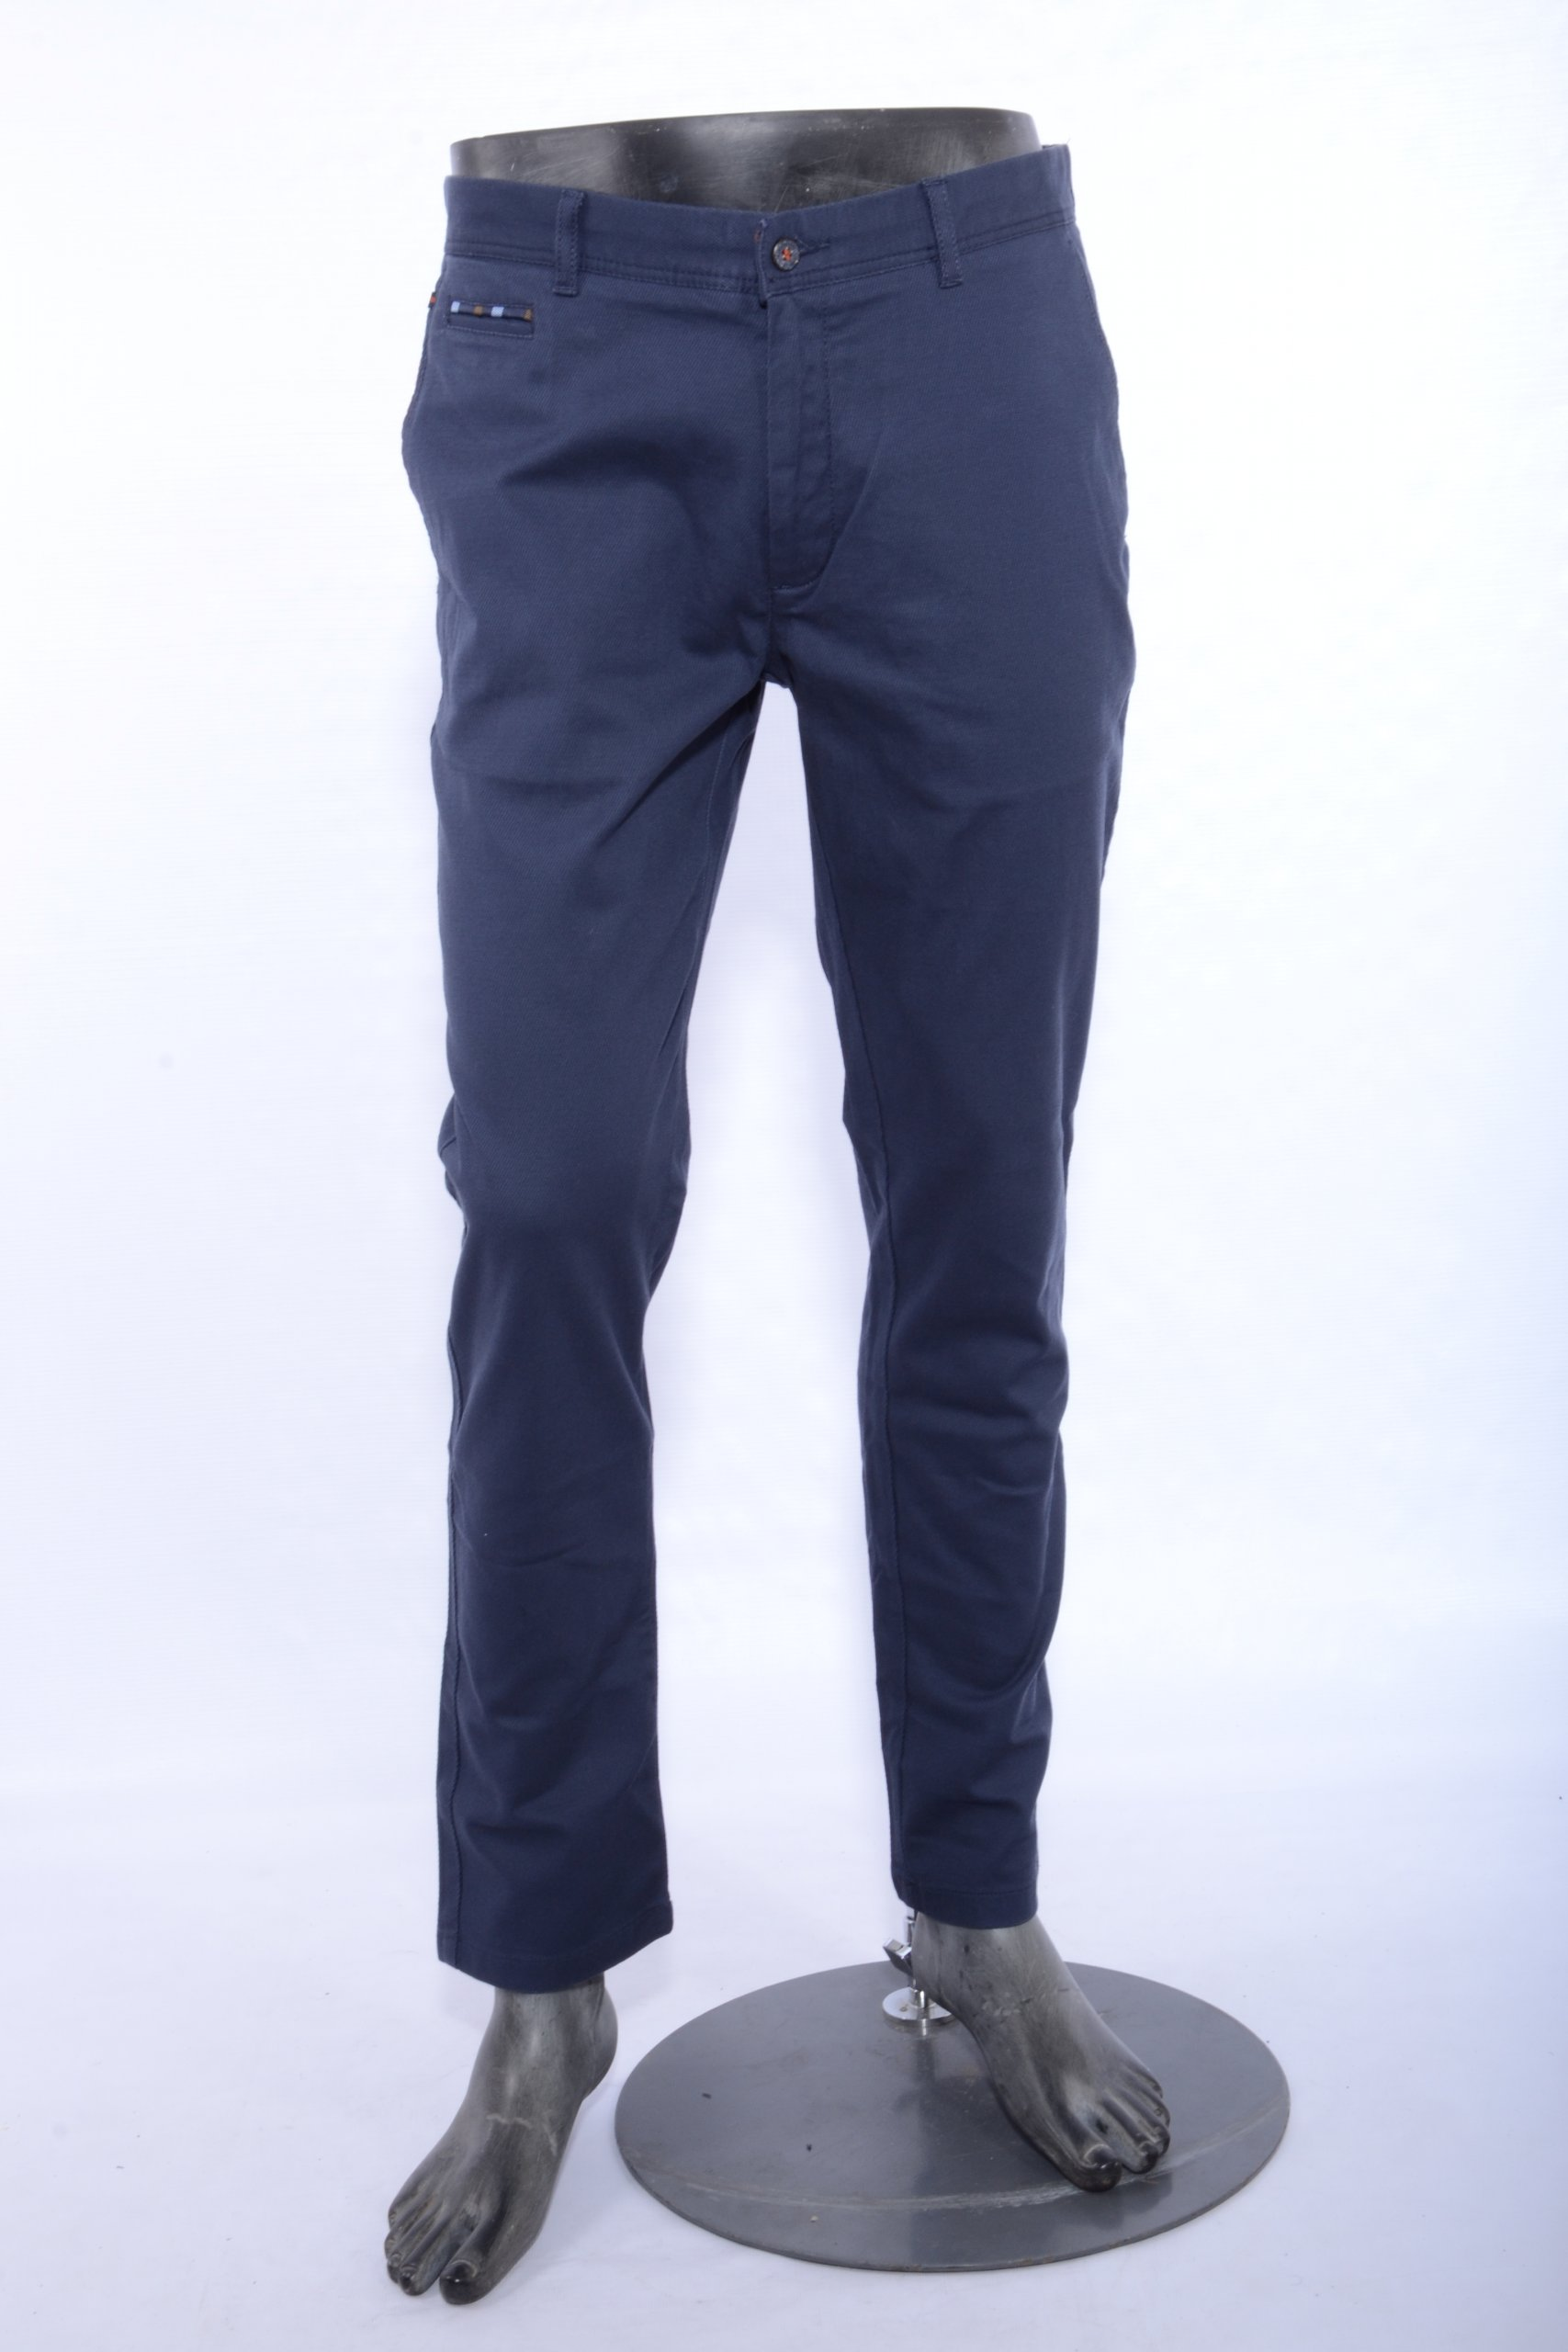 Blue Coloured Trouser by Black Berry